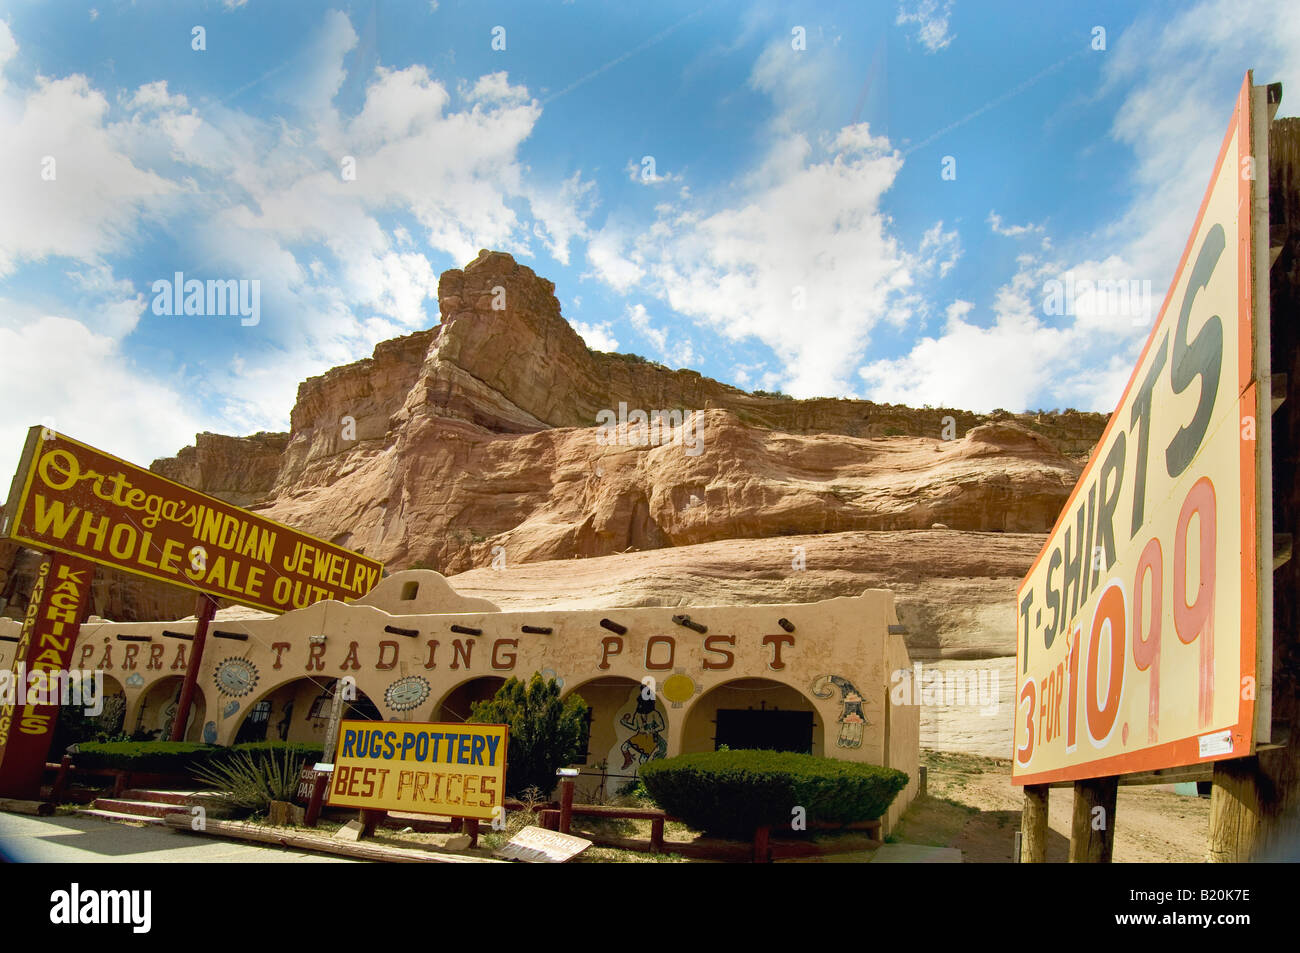 Trading post along Interstate 40 in northern Arizona selling southwestern and Native American jewelry and souvenirs - Stock Image